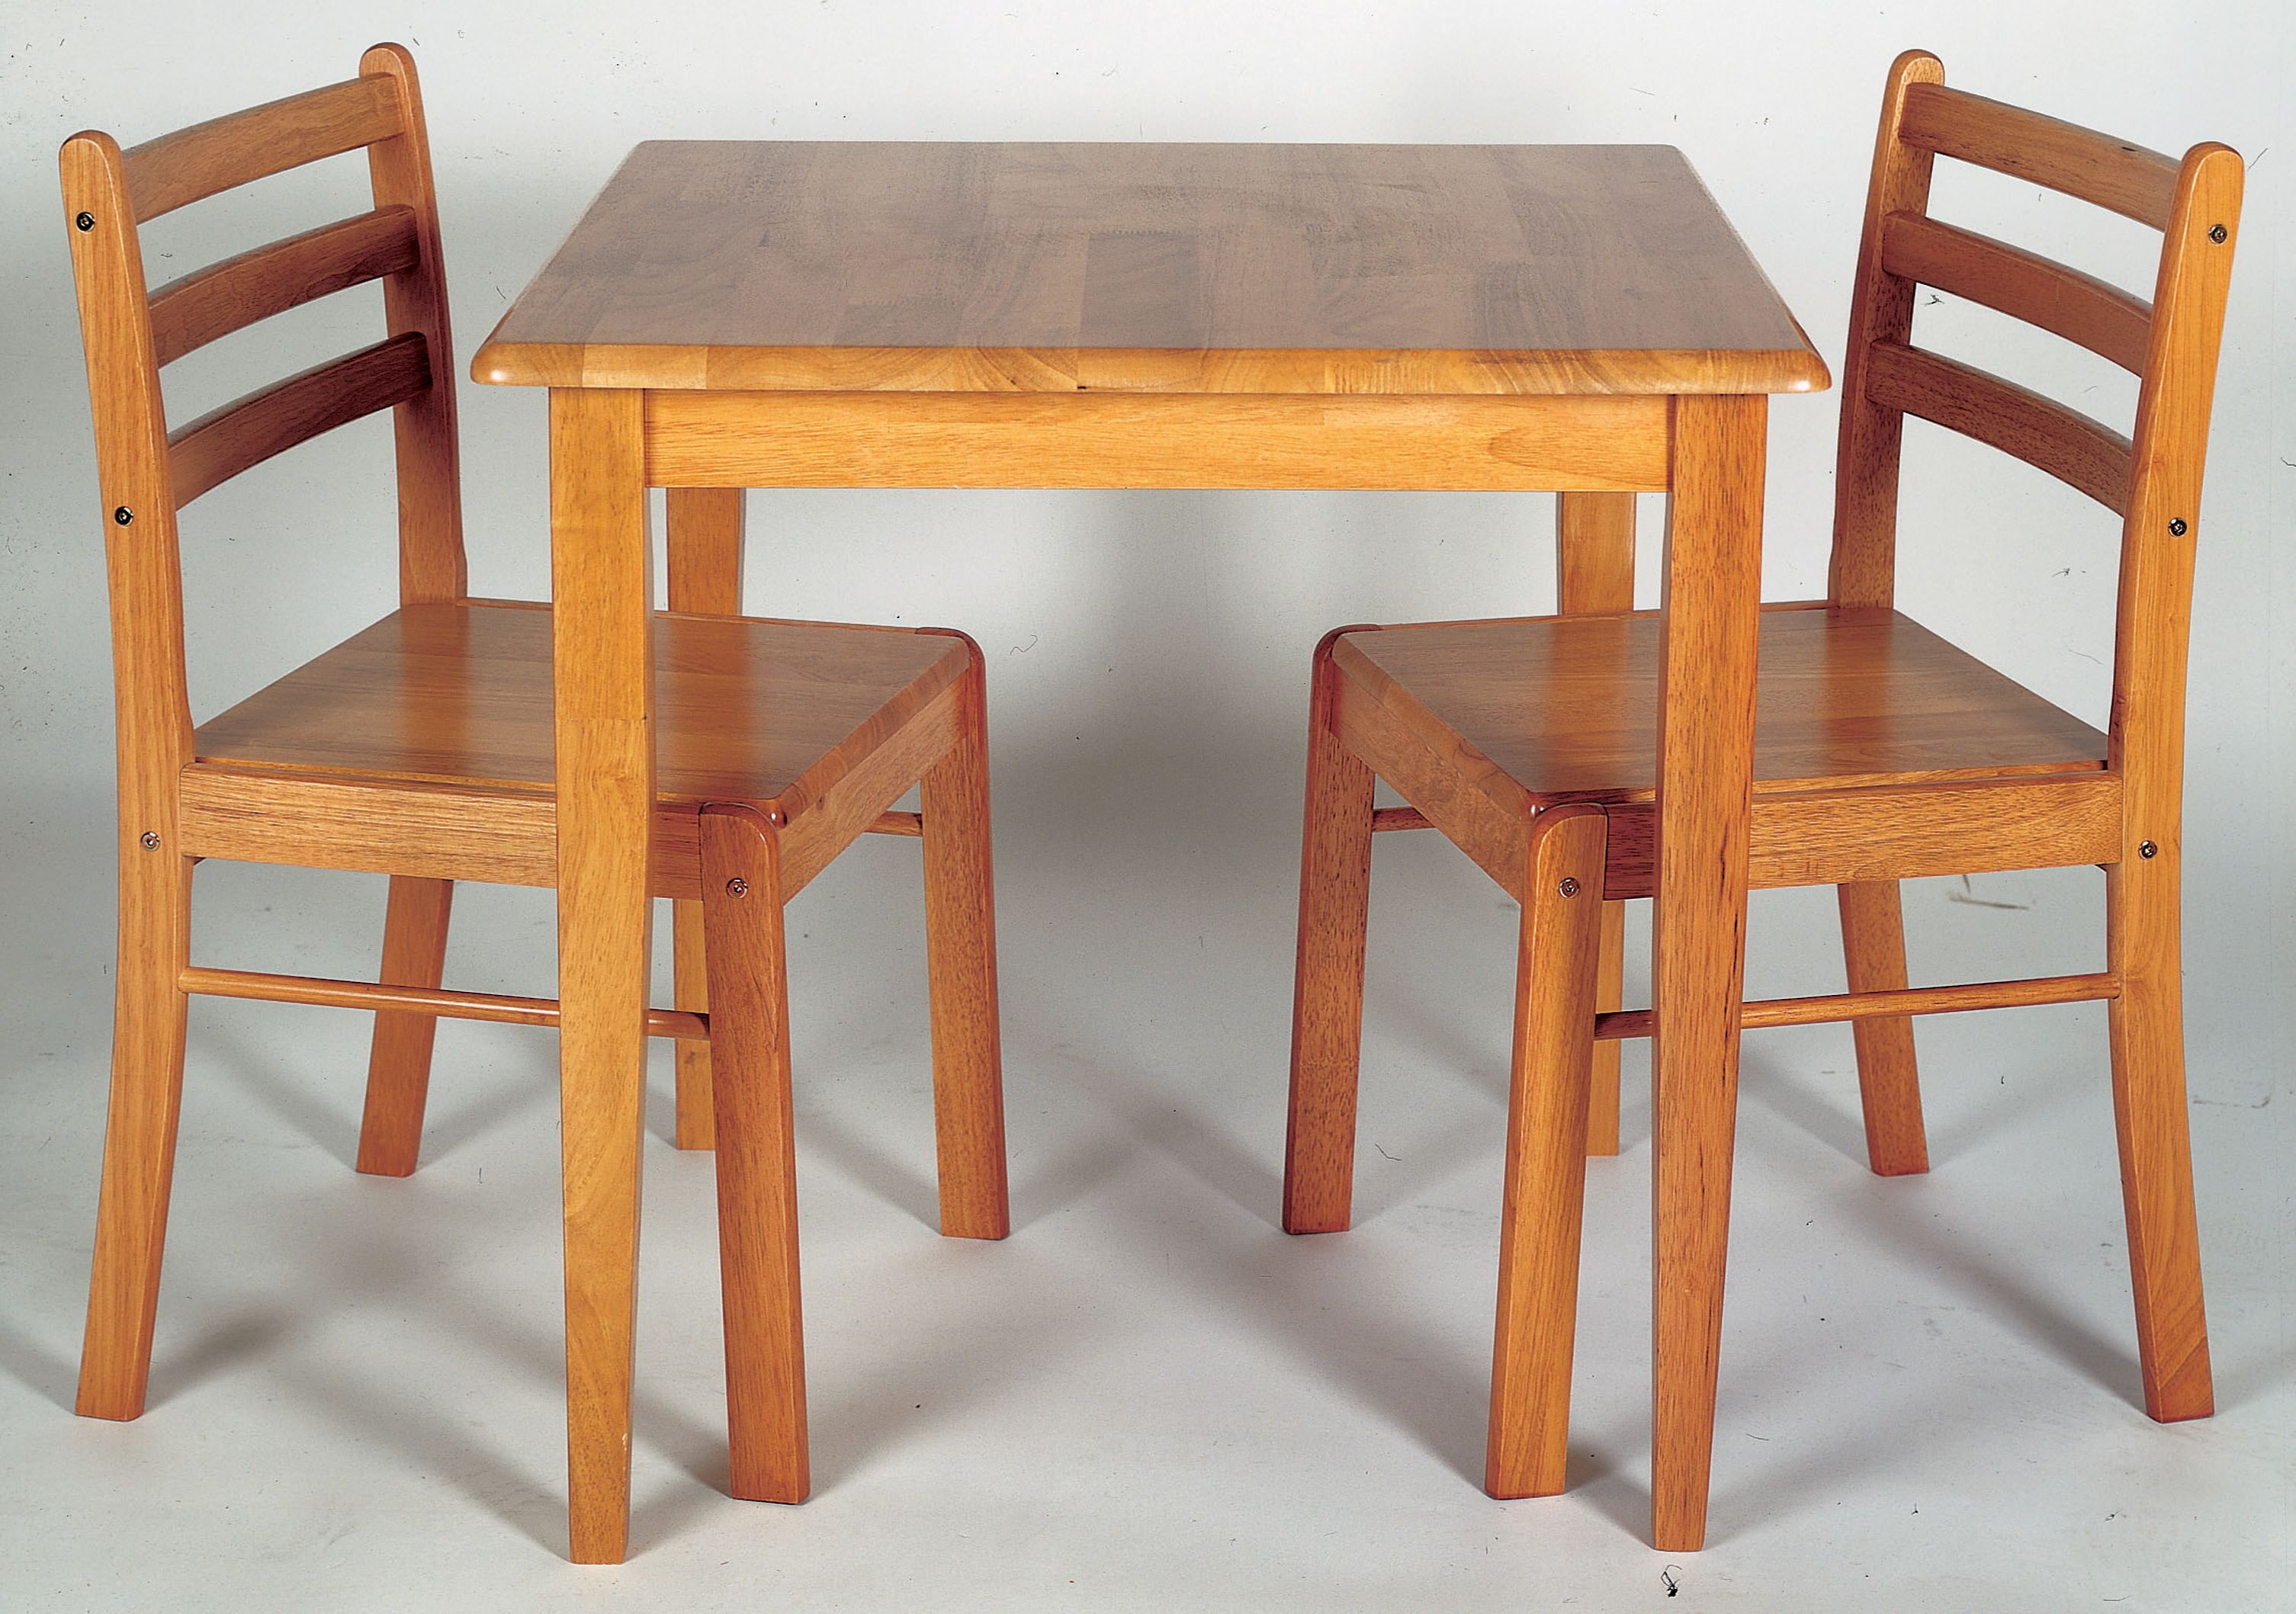 8 chair table size stackable wicker chairs honeymoon antique pine finish square with 2 solid